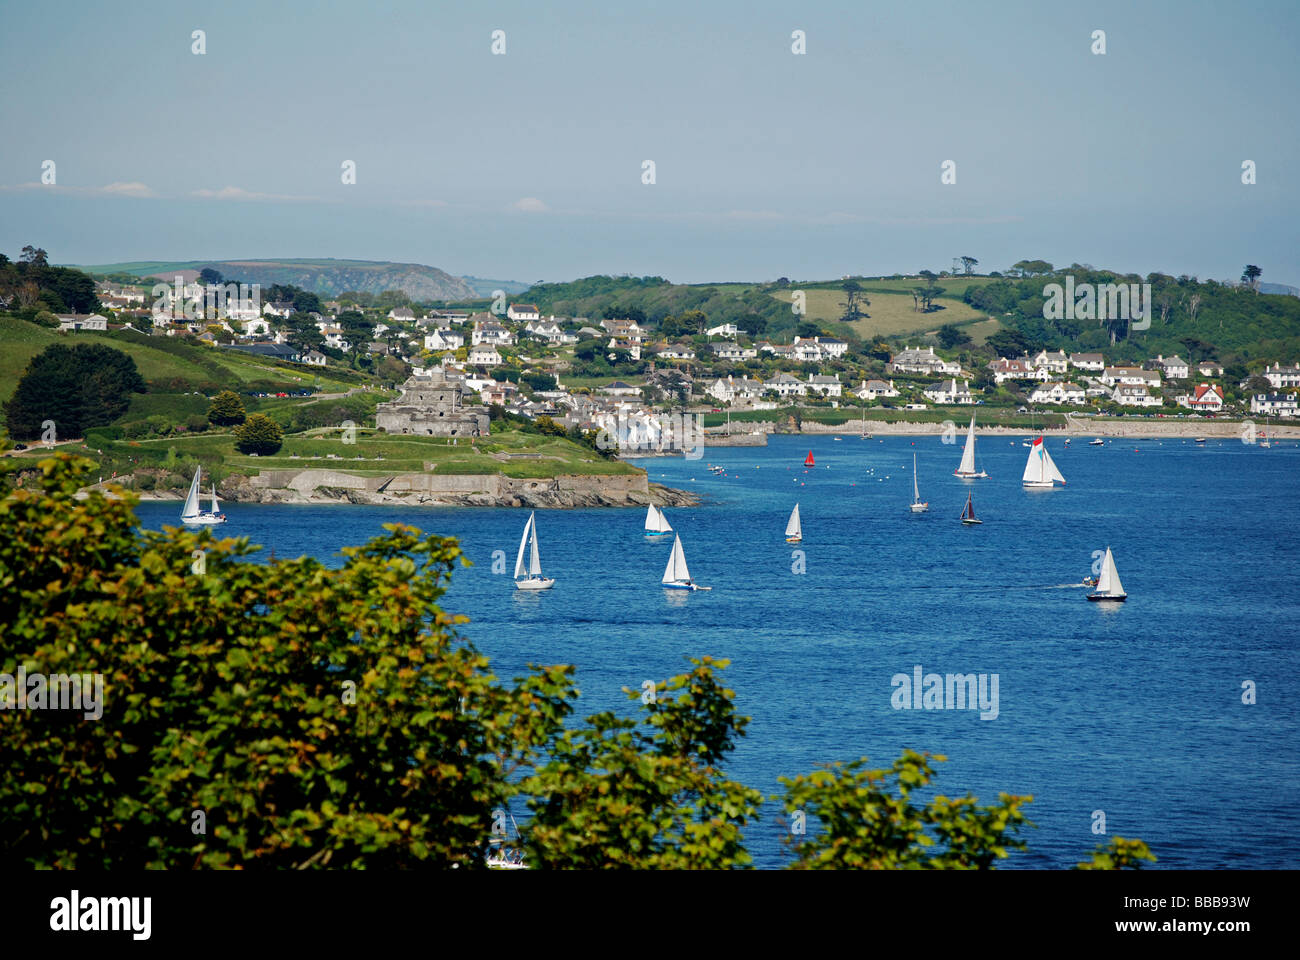 a view over the carrick roads looking towards st.mawes and falmouth bay from pendennis castle,falmouth,cornwall,uk - Stock Image